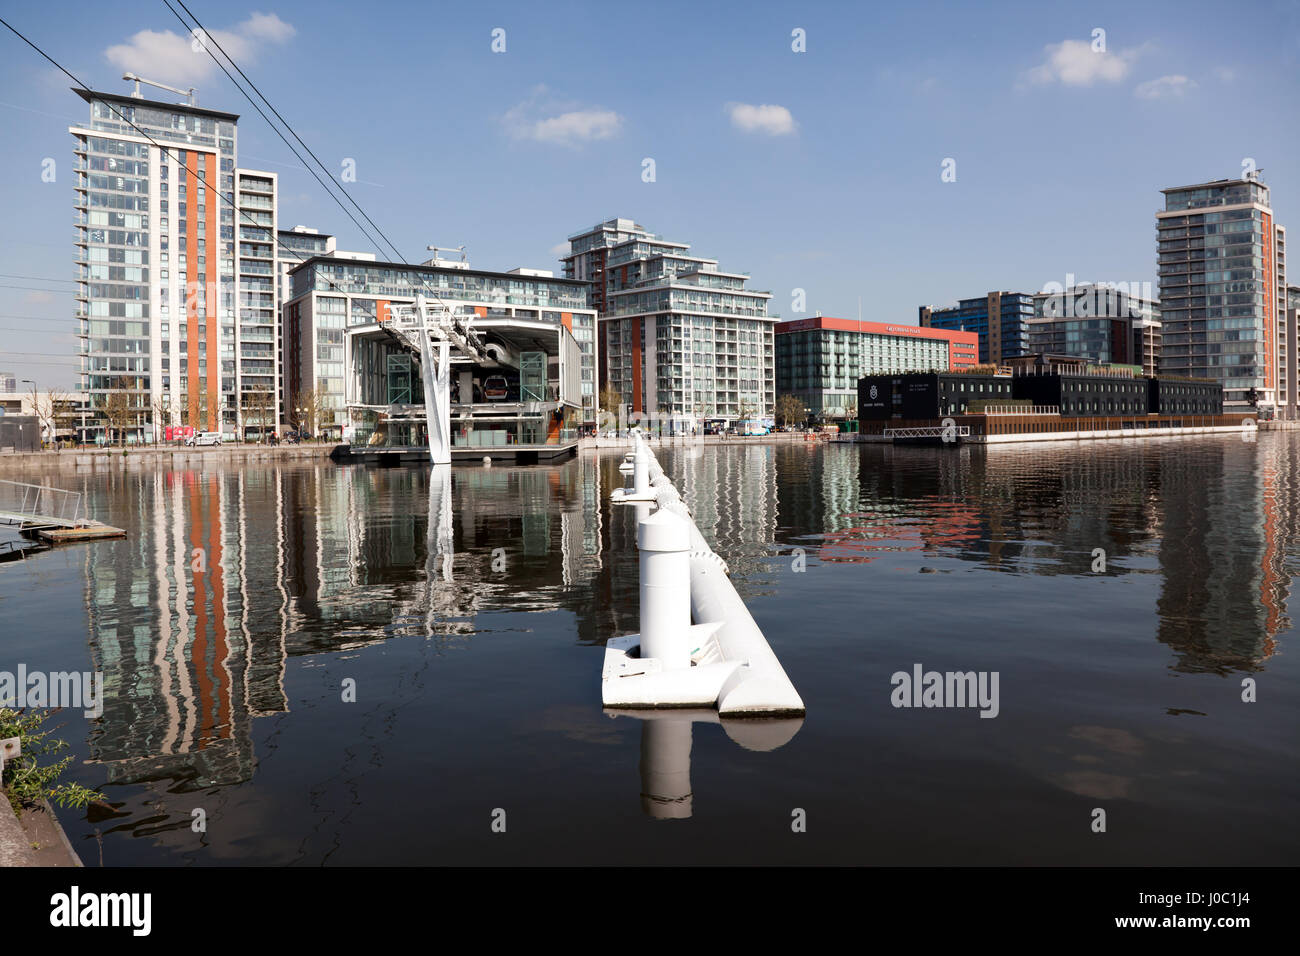 Emirates Airline Cable Car Terminus in the Royal Victoria Docks, Newham, East London - Stock Image